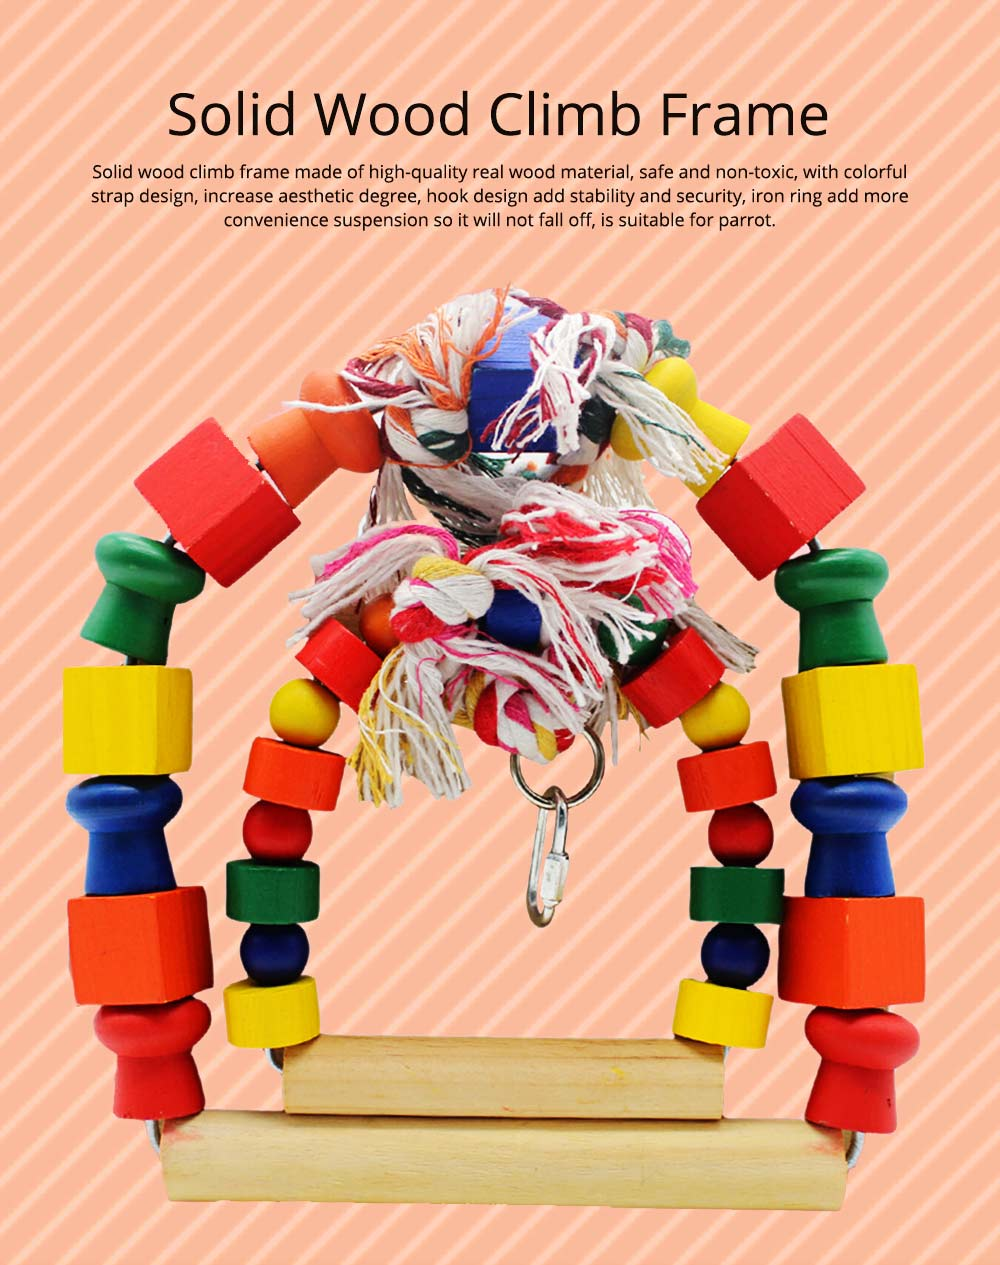 Solid Wood Climb Frame for Parrot Colorful Strap Round Pet Supplies, Safe Non-toxic Iron Ring Real Wood Pet Toys 0